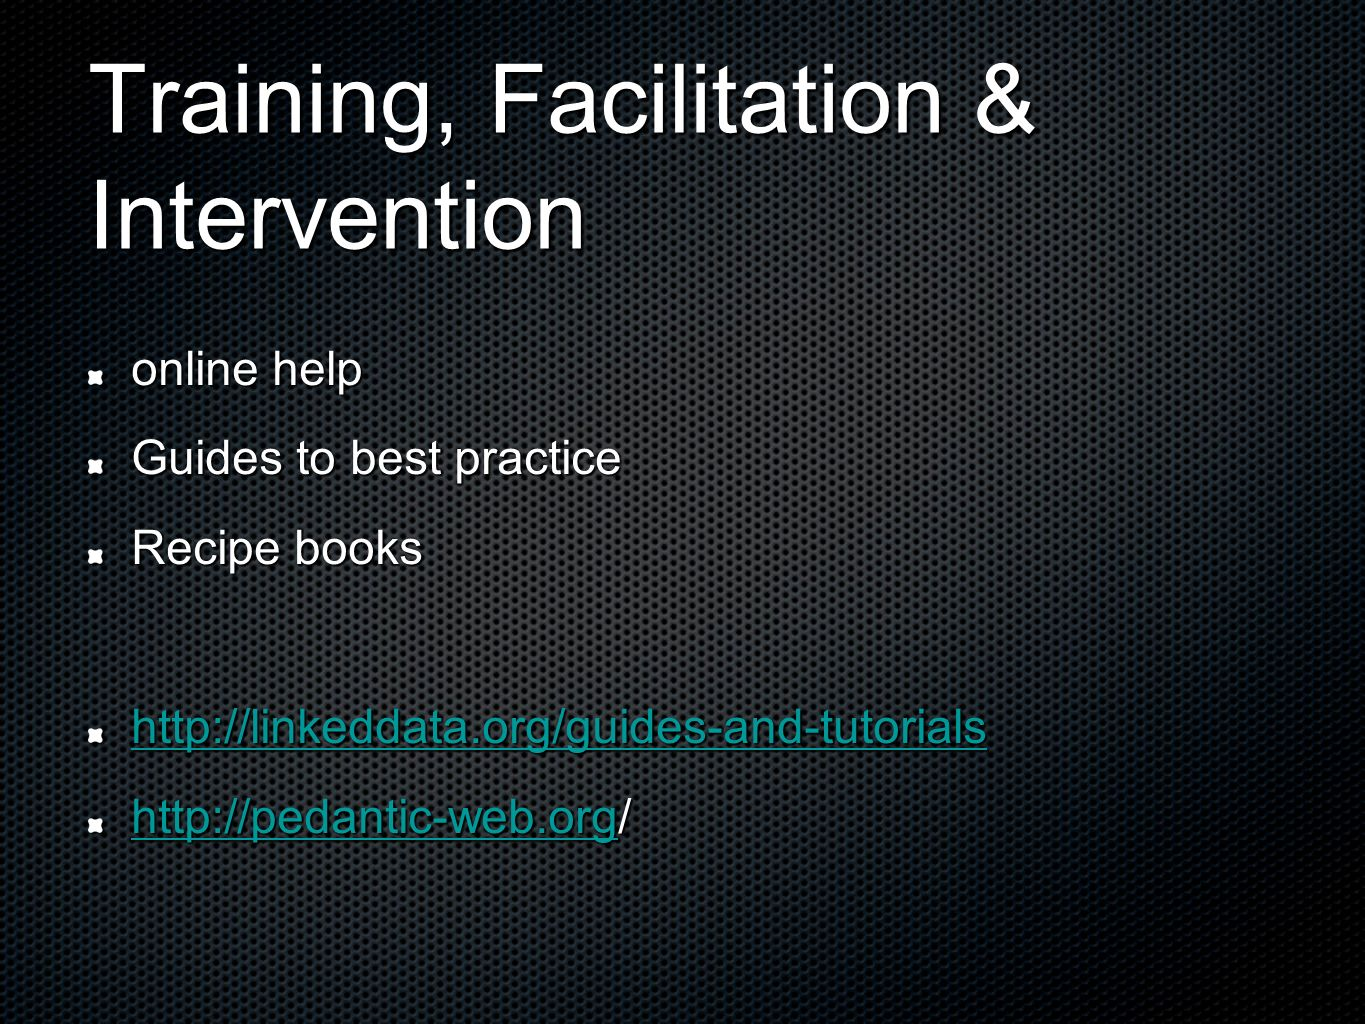 Training, Facilitation & Intervention online help Guides to best practice Recipe books http://linkeddata.org/guides-and-tutorials http://pedantic-web.orghttp://pedantic-web.org/ http://pedantic-web.org